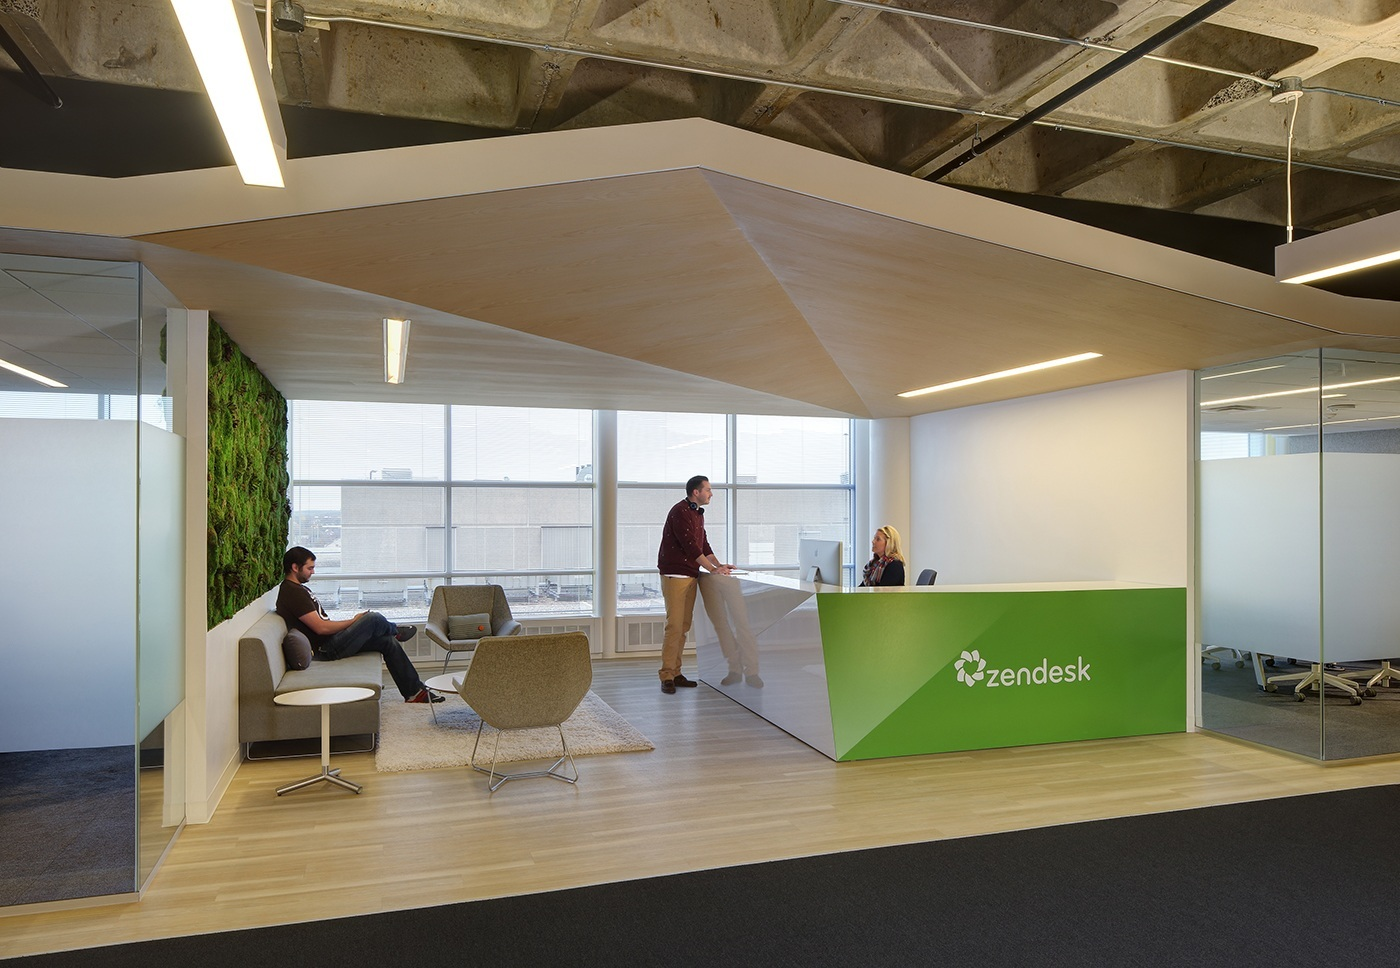 A Peek Inside Zendesks New Madison Offices